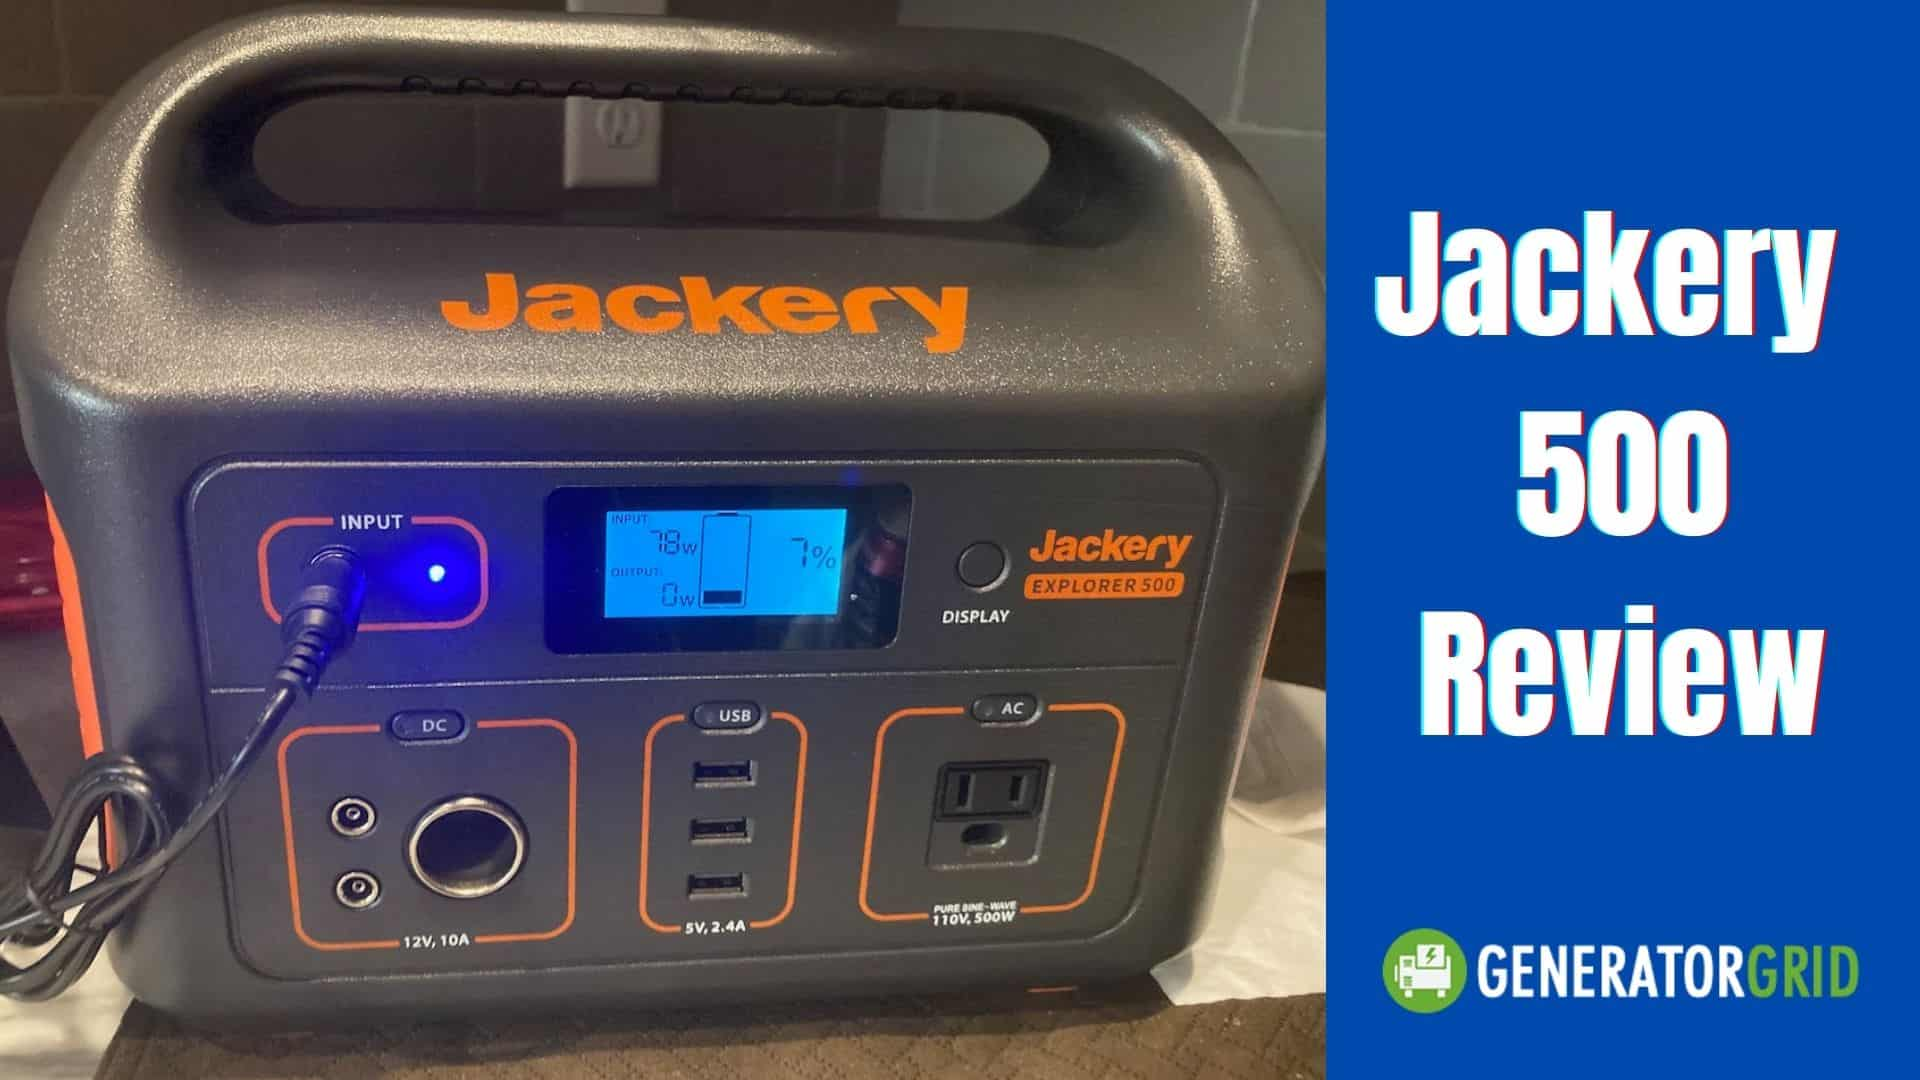 Jackery 500 Review